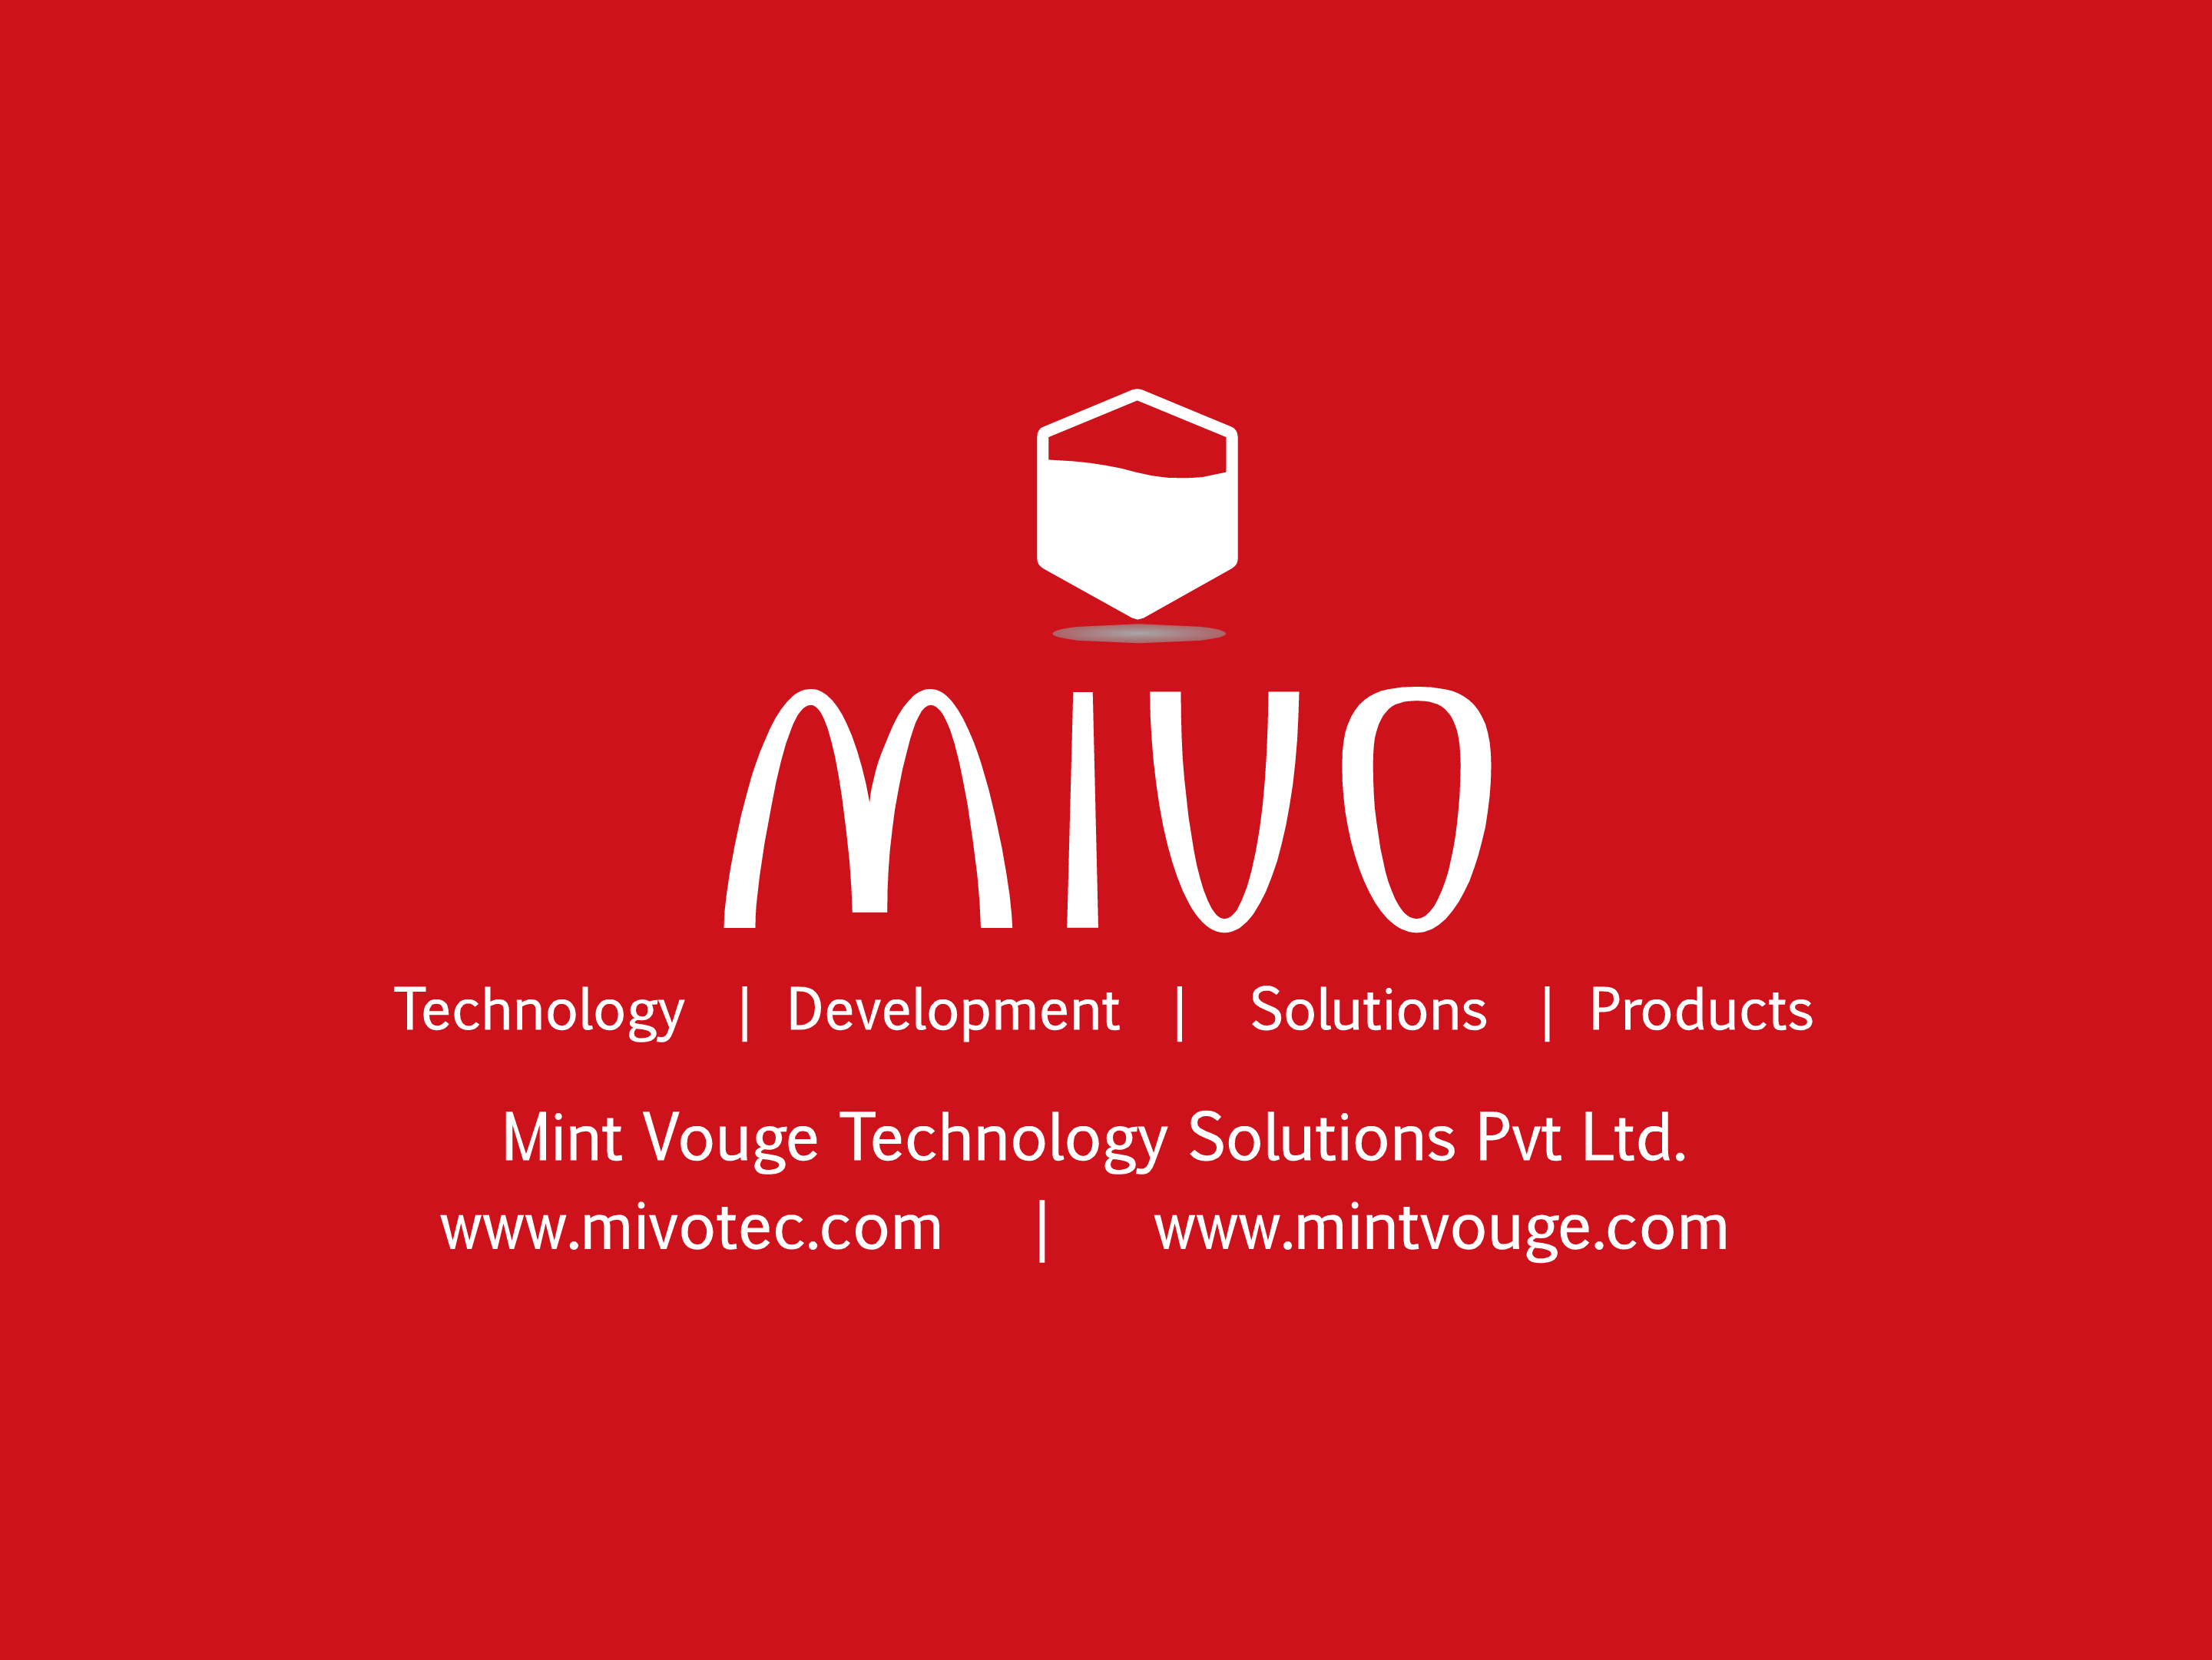 Excellent Opportunity for Internship in MIVO ,Looking for Content Writer Executives